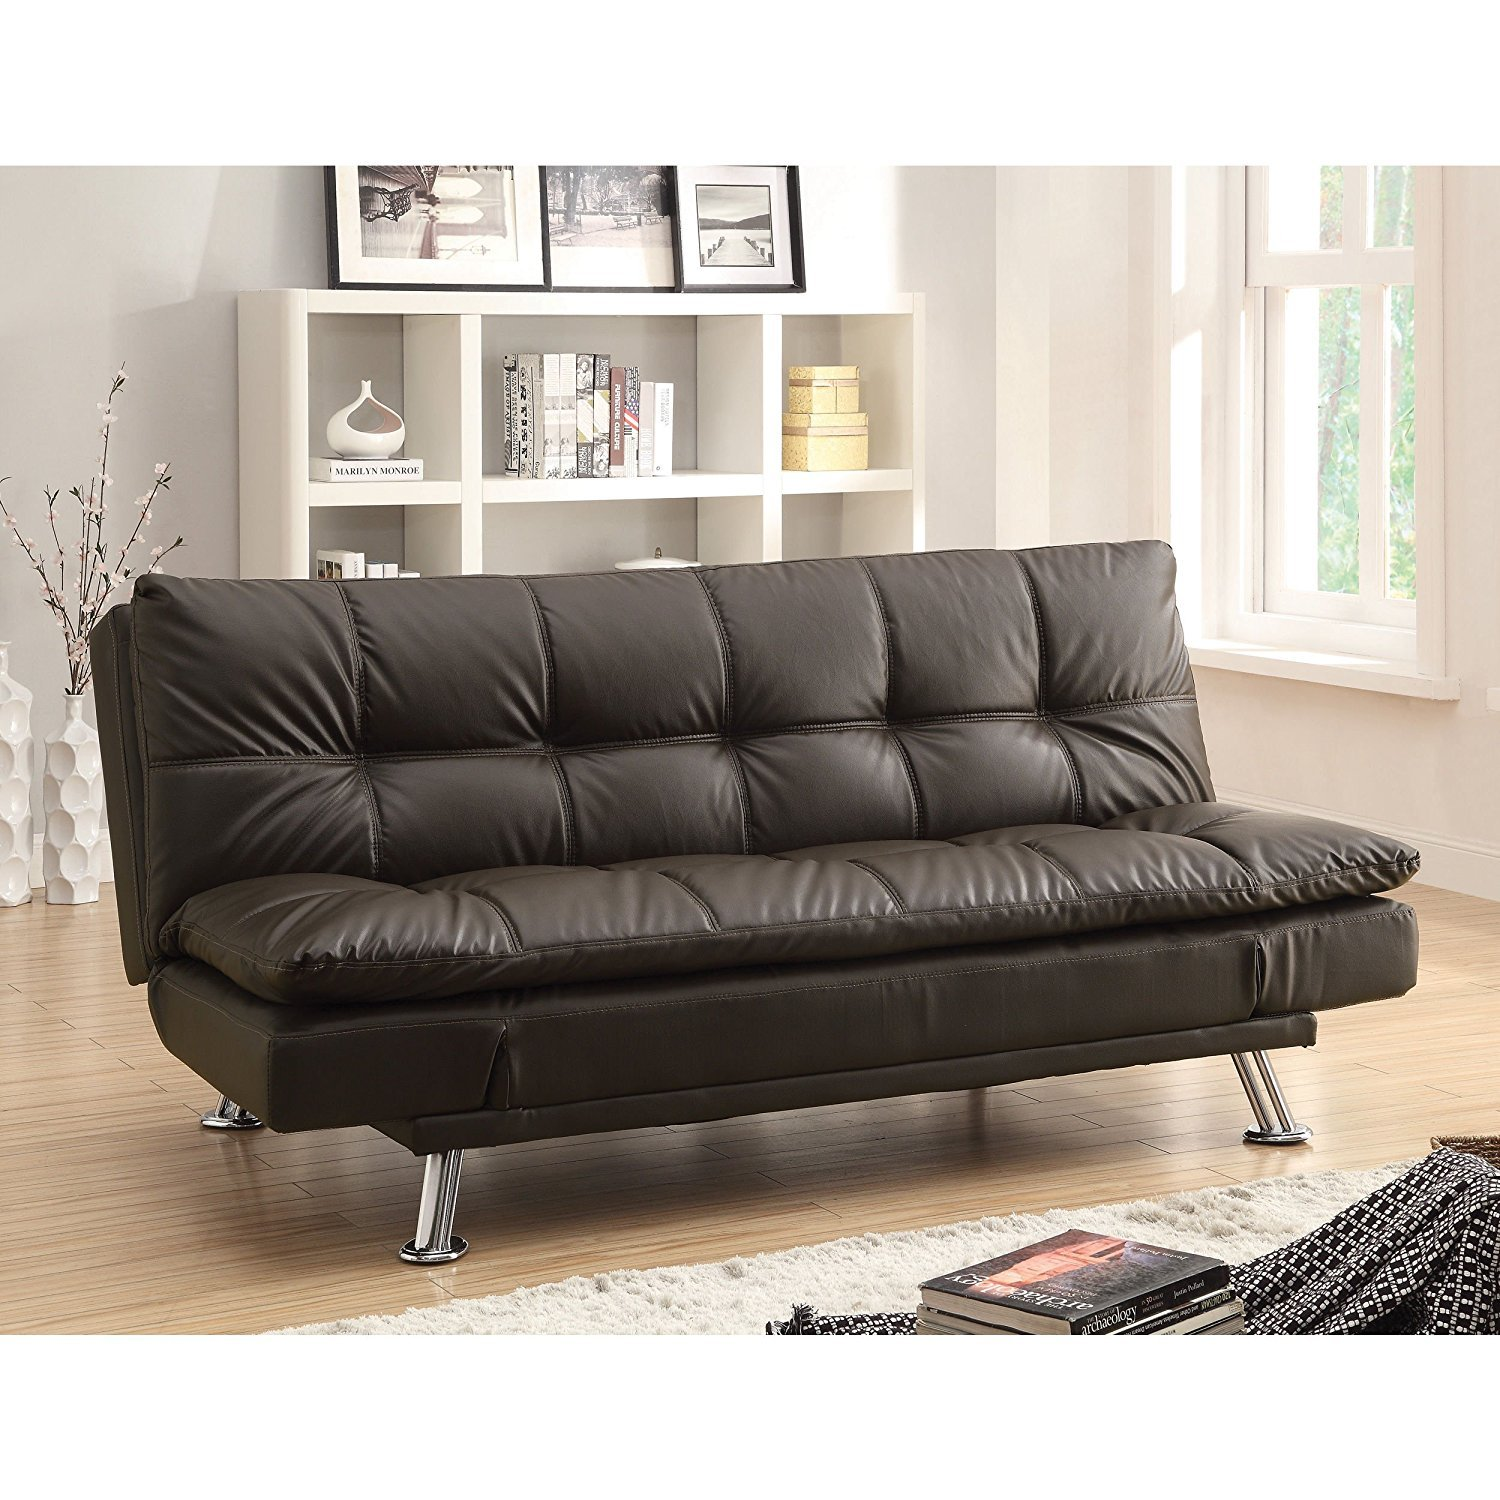 Amazon Coaster Home Furnishings Contemporary Sofa Bed